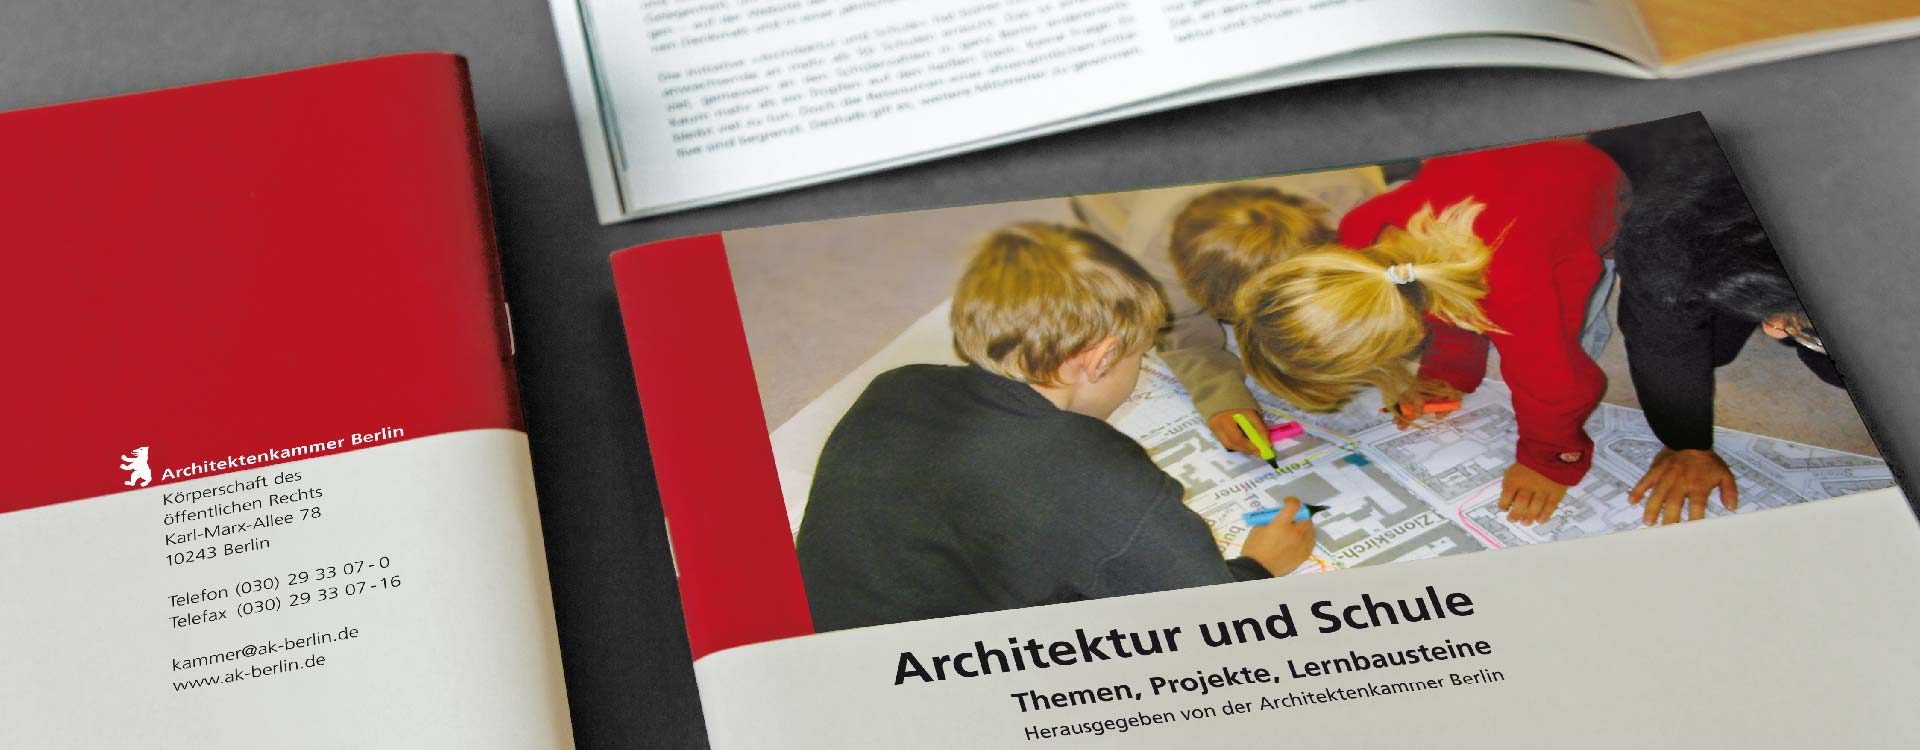 Front cover the brochure Architektur und Schule for the Chamber of Architects Berlin; Design: Kattrin Richter | Graphic Design Studio